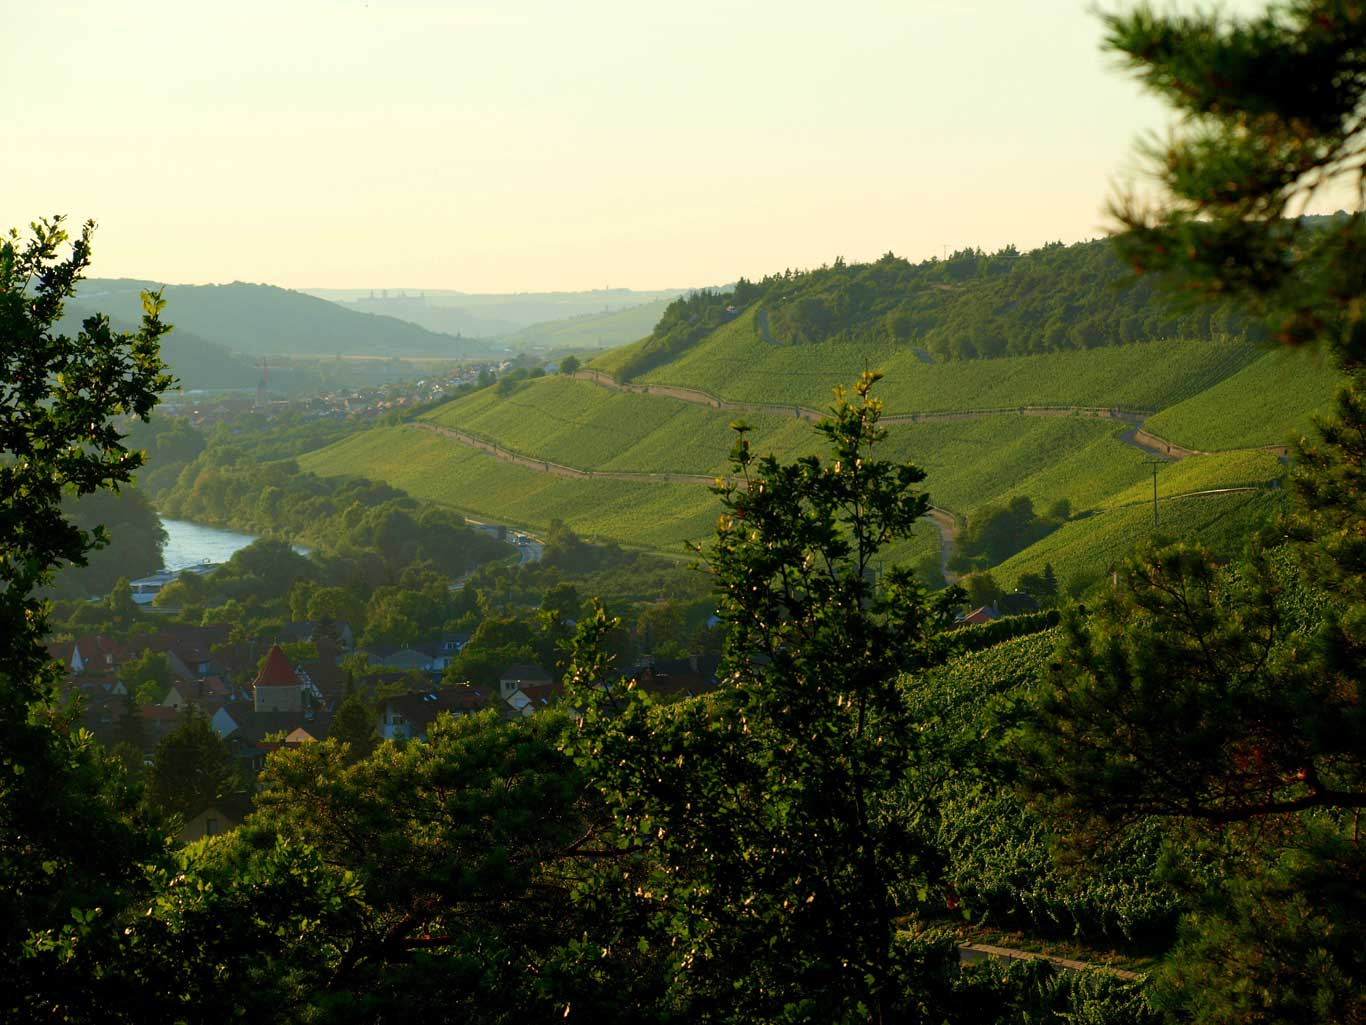 View along the Main valley towards Würzburg